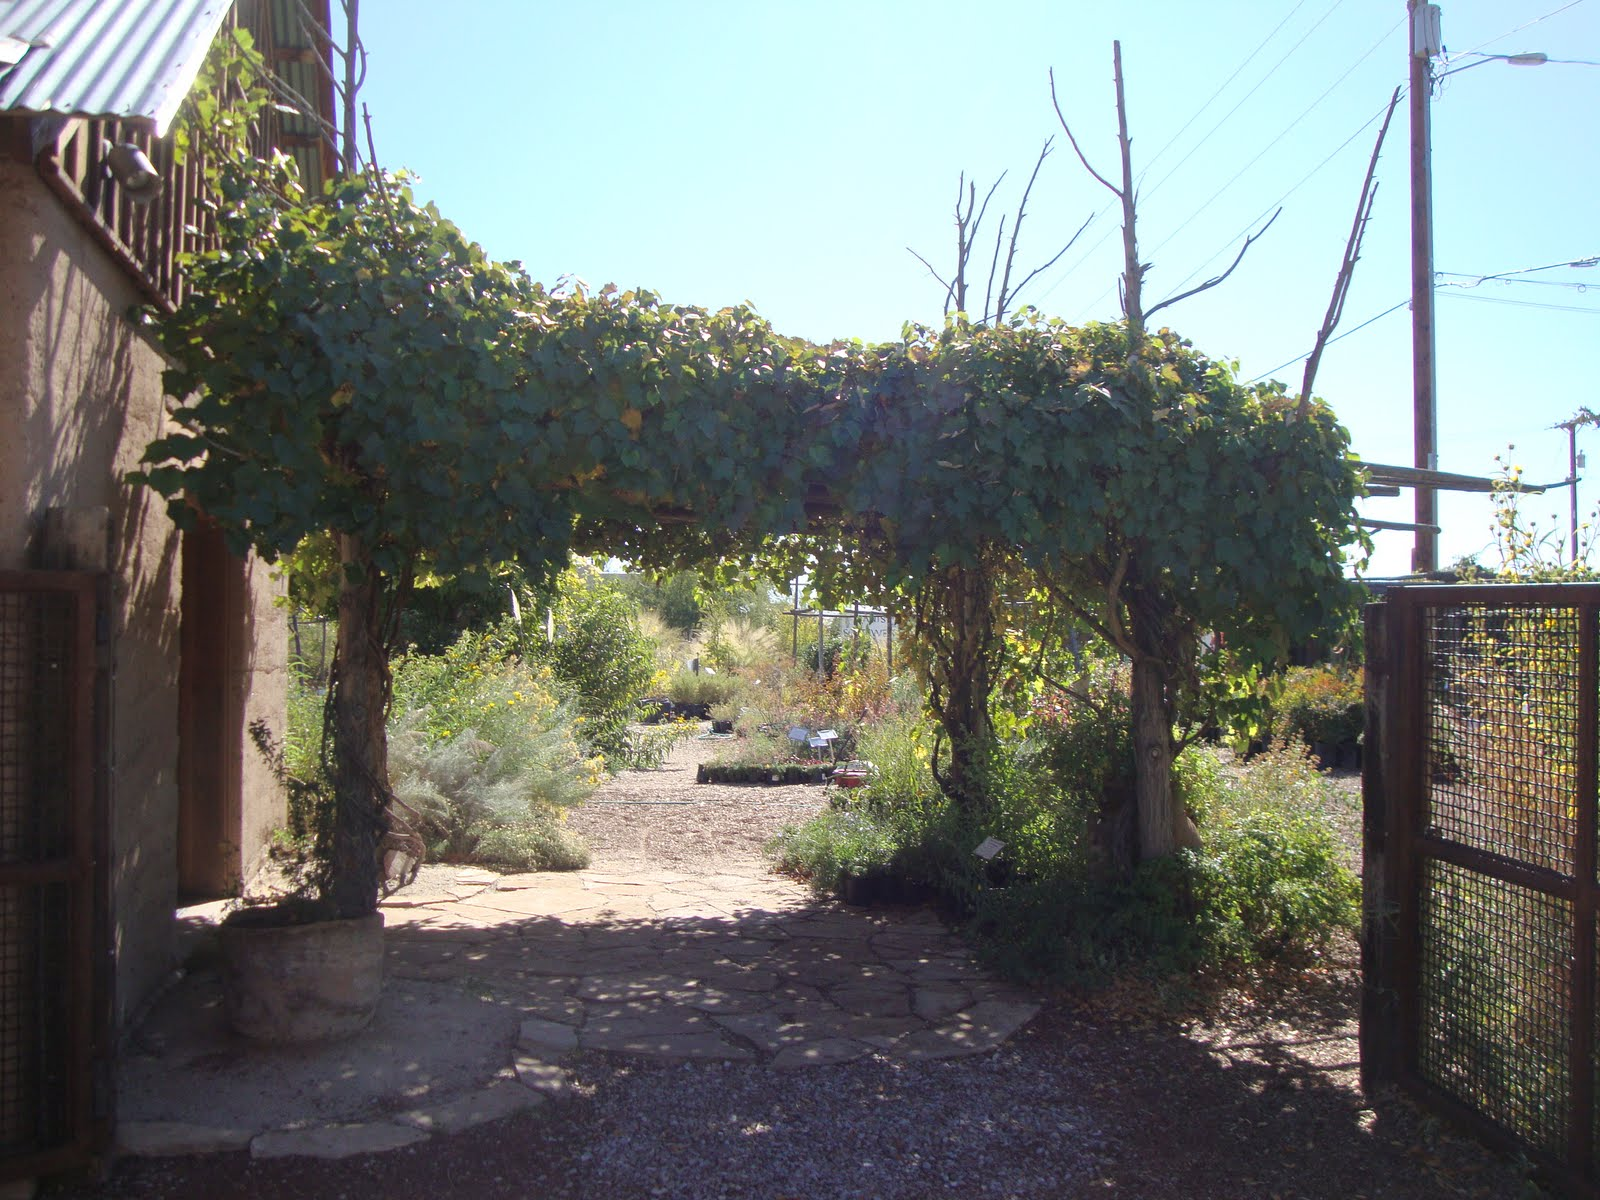 Plants Of The Southwest Is Based In Santa Fe Nm But Our Visit Was To Satellite Nursery Albuquerque We Thoroughly Enjoyed It